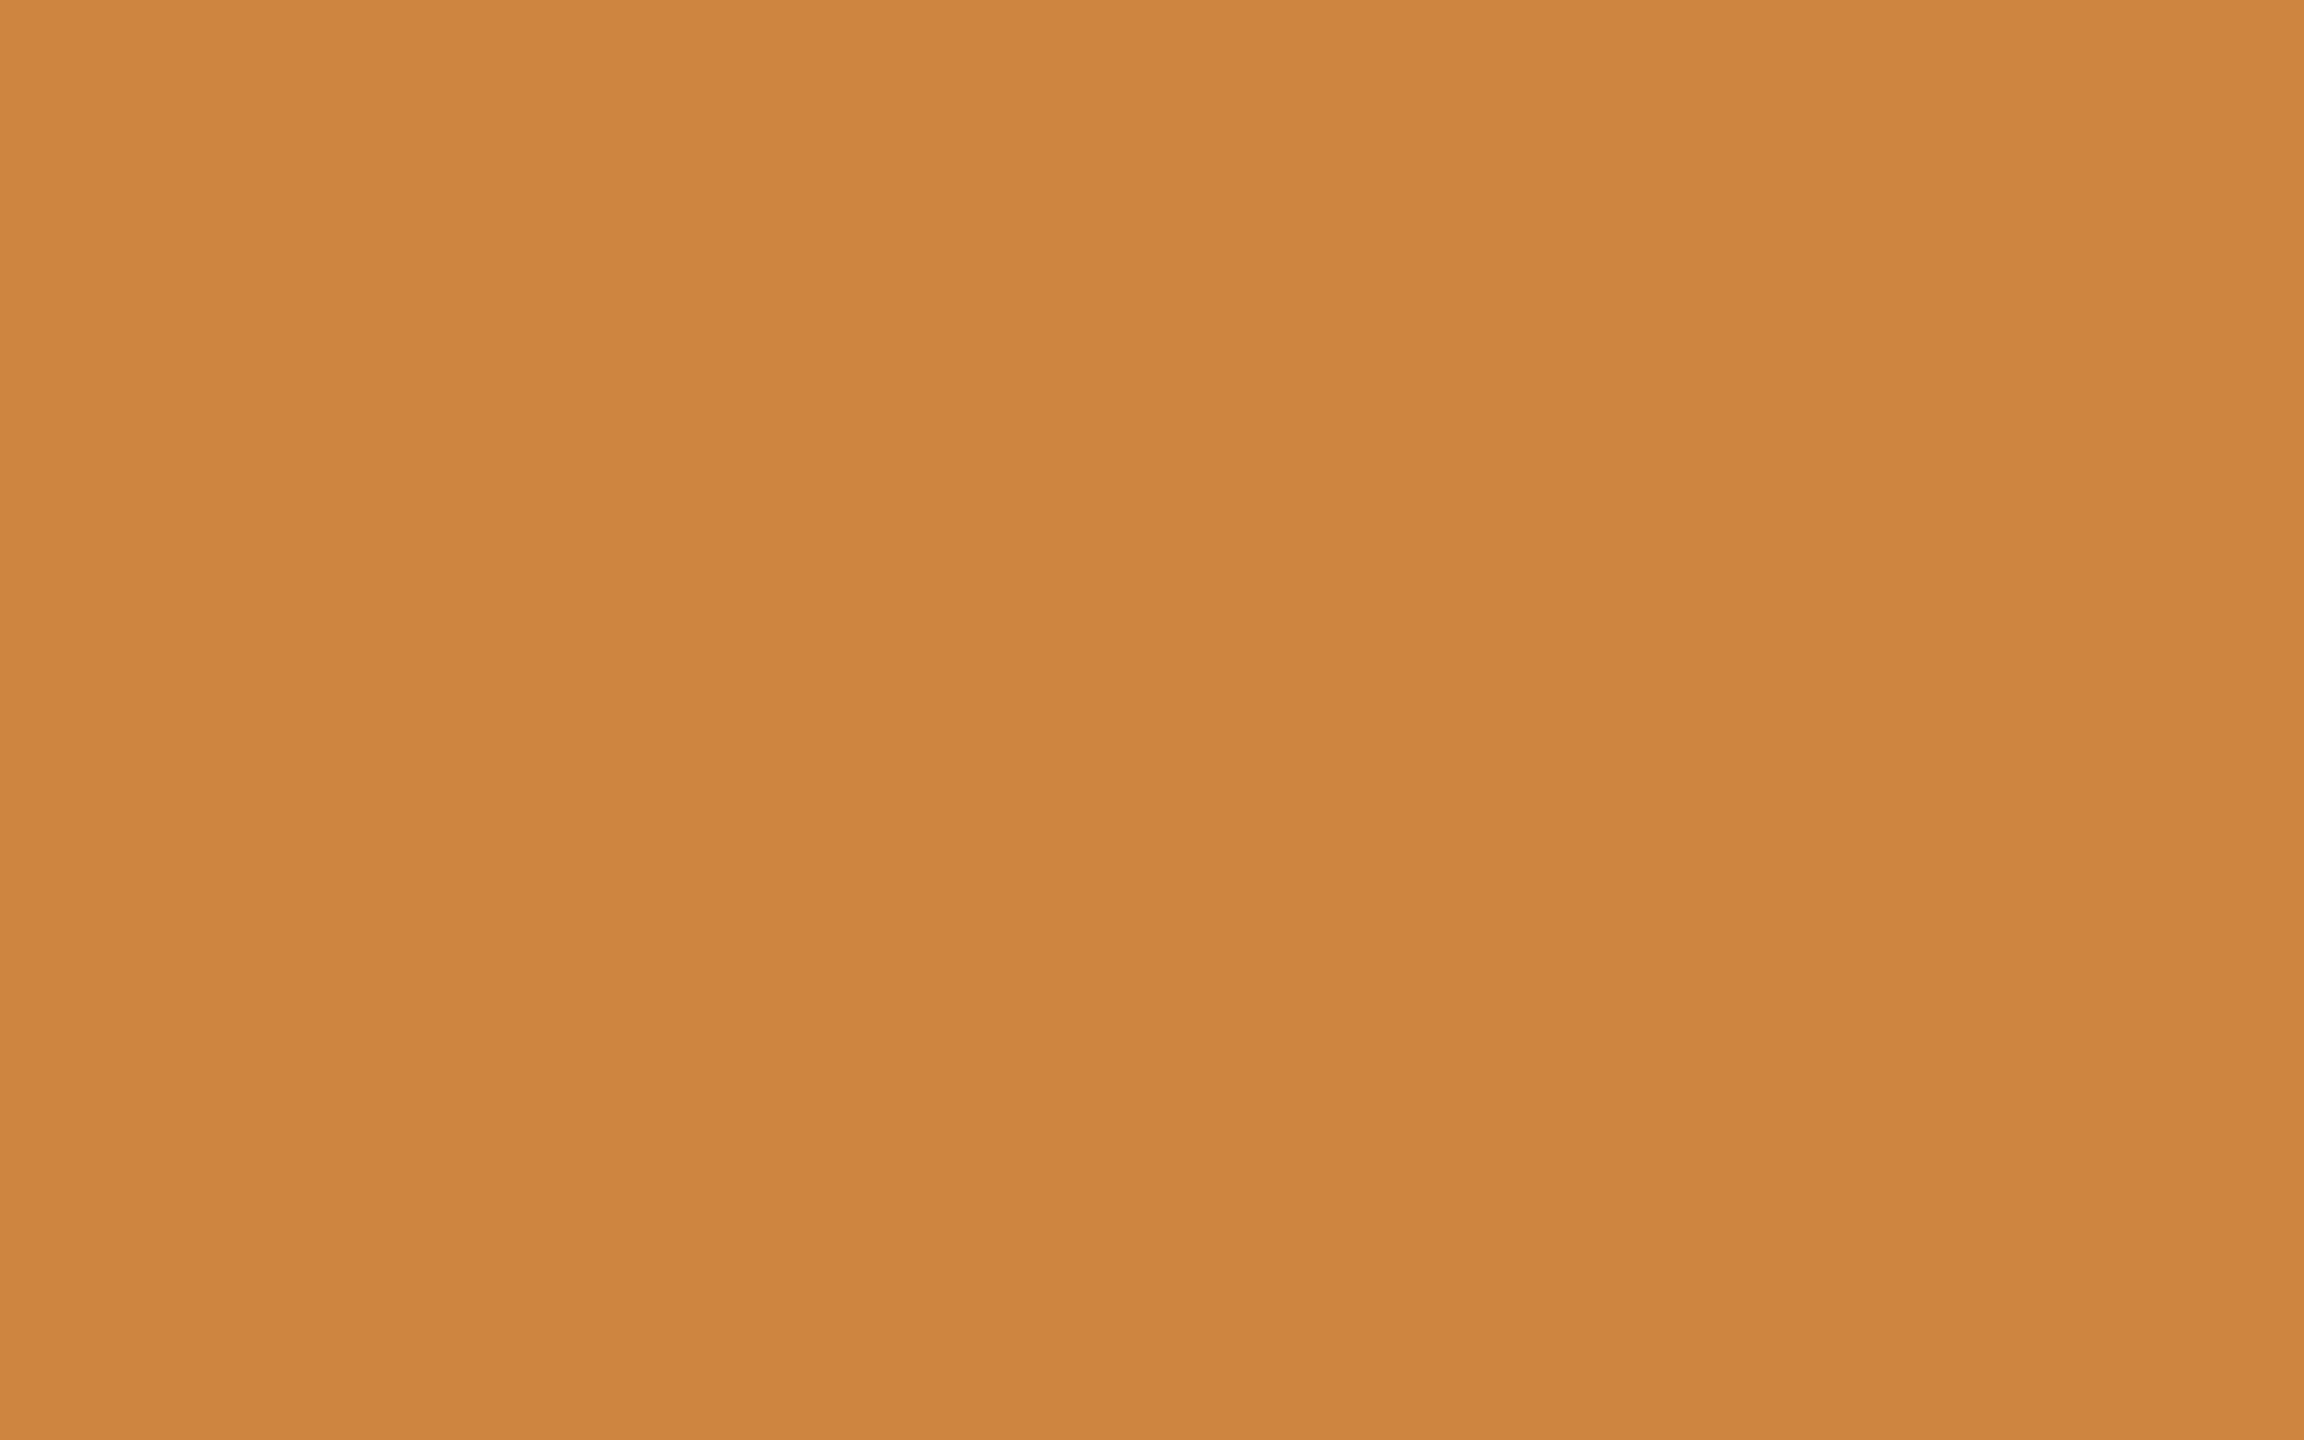 2304x1440 Peru Solid Color Background